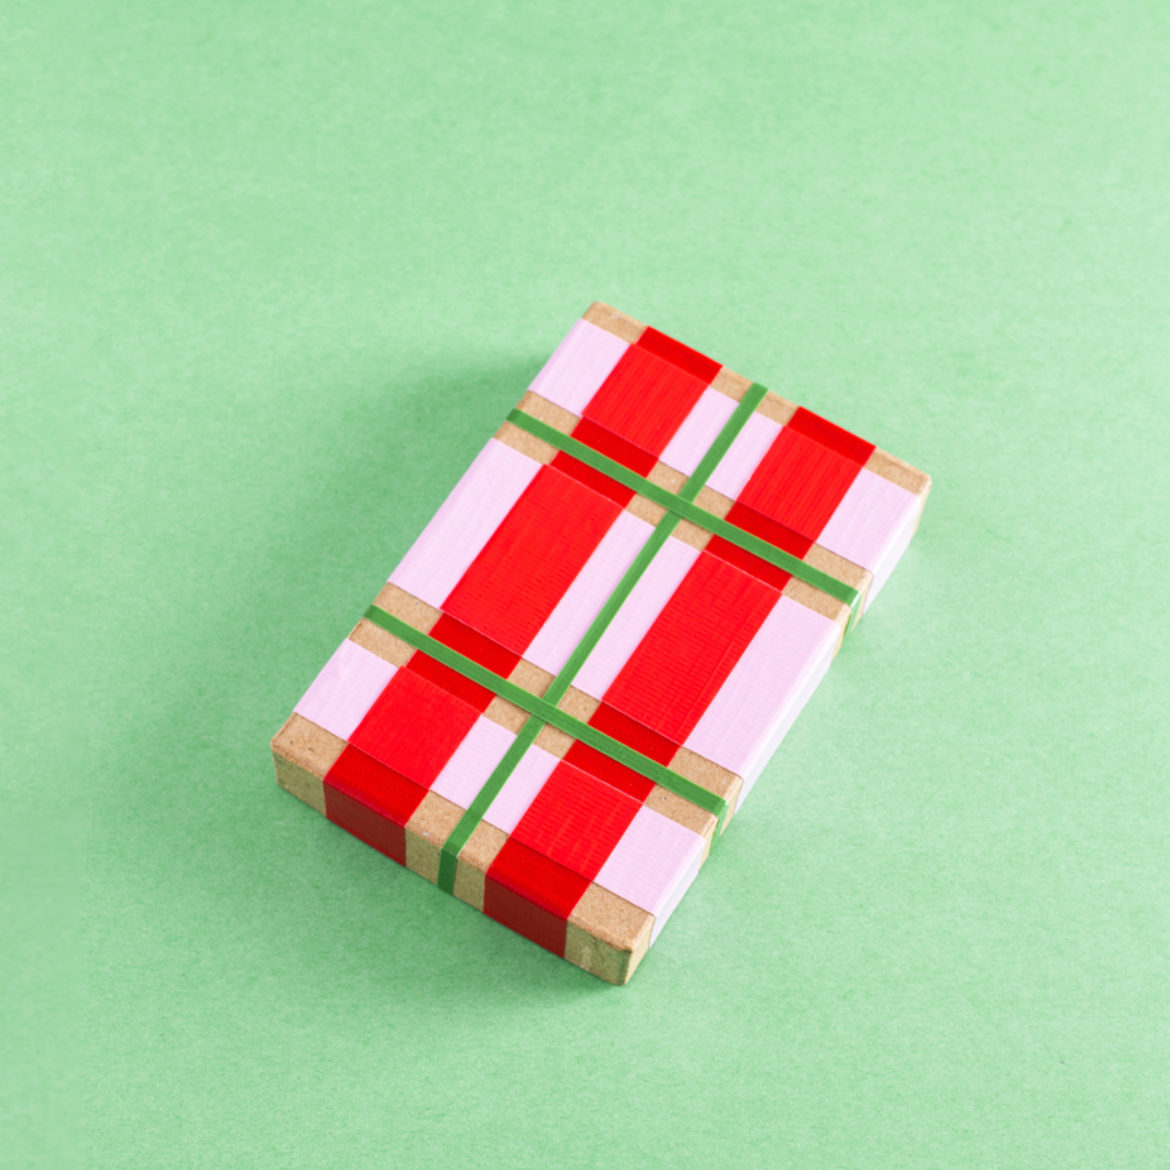 Strips of pink, red and green duct tape on a paper mache box